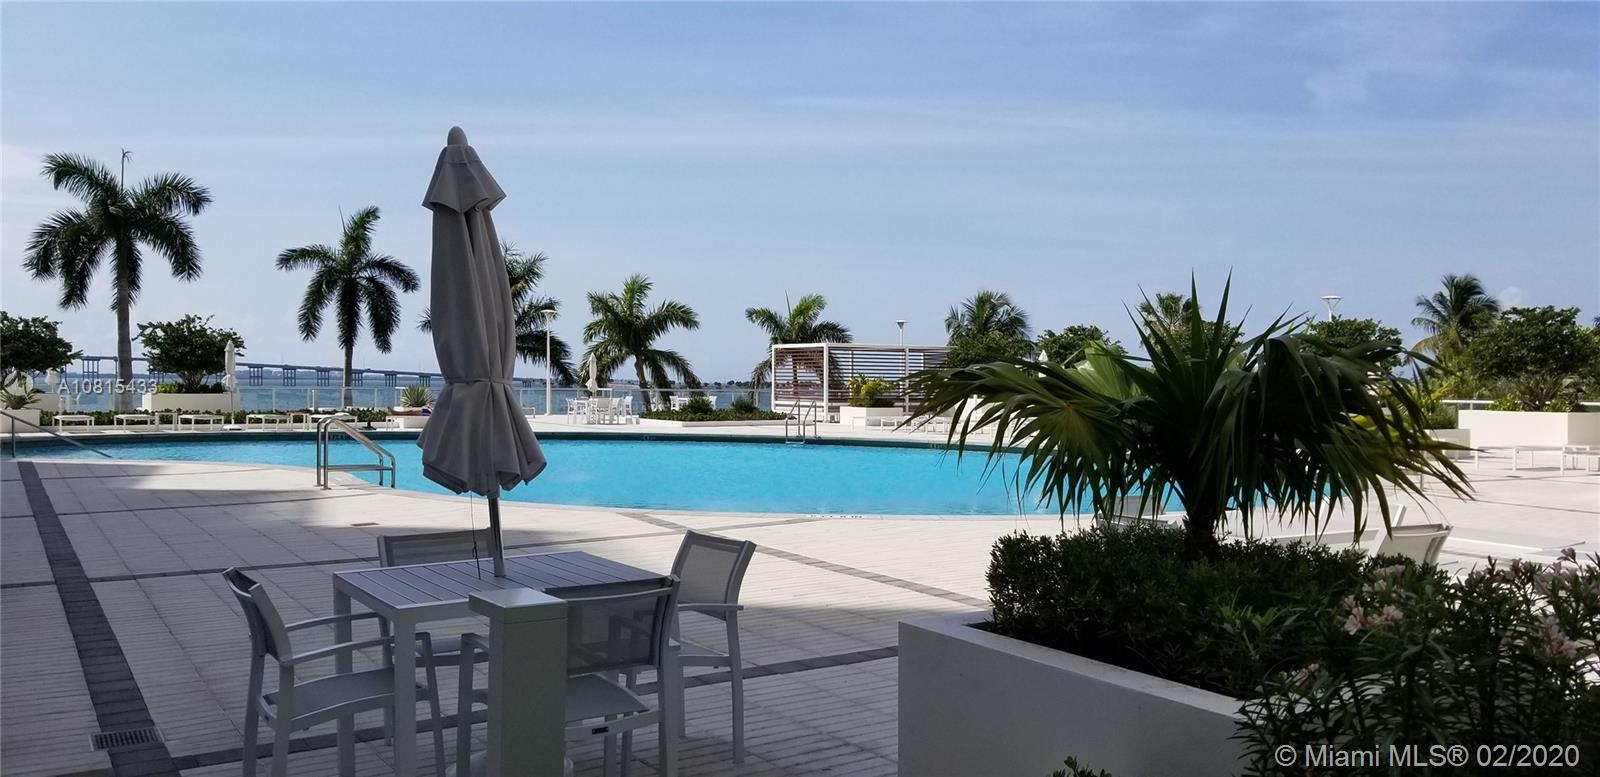 1541  Brickell Ave #B310 For Sale A10815433, FL